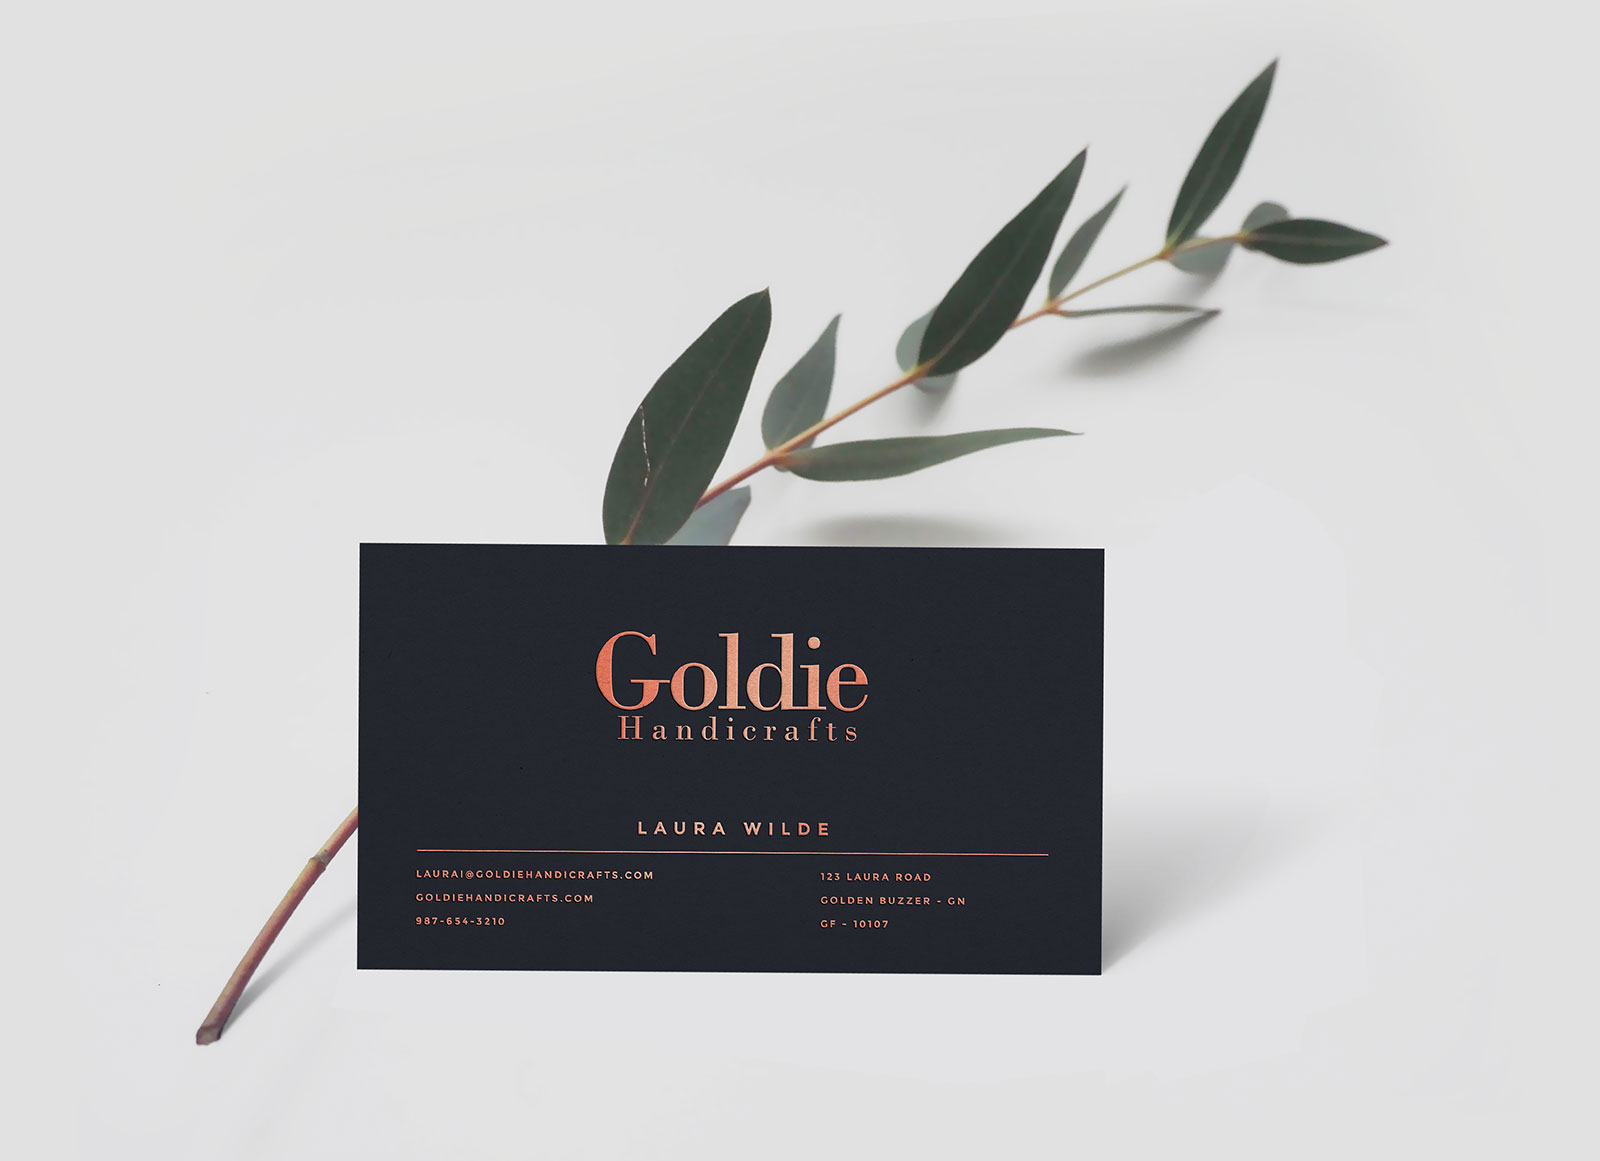 Free realistic black business card mockup psd good mockups free realistic black business card mockup psd colourmoves